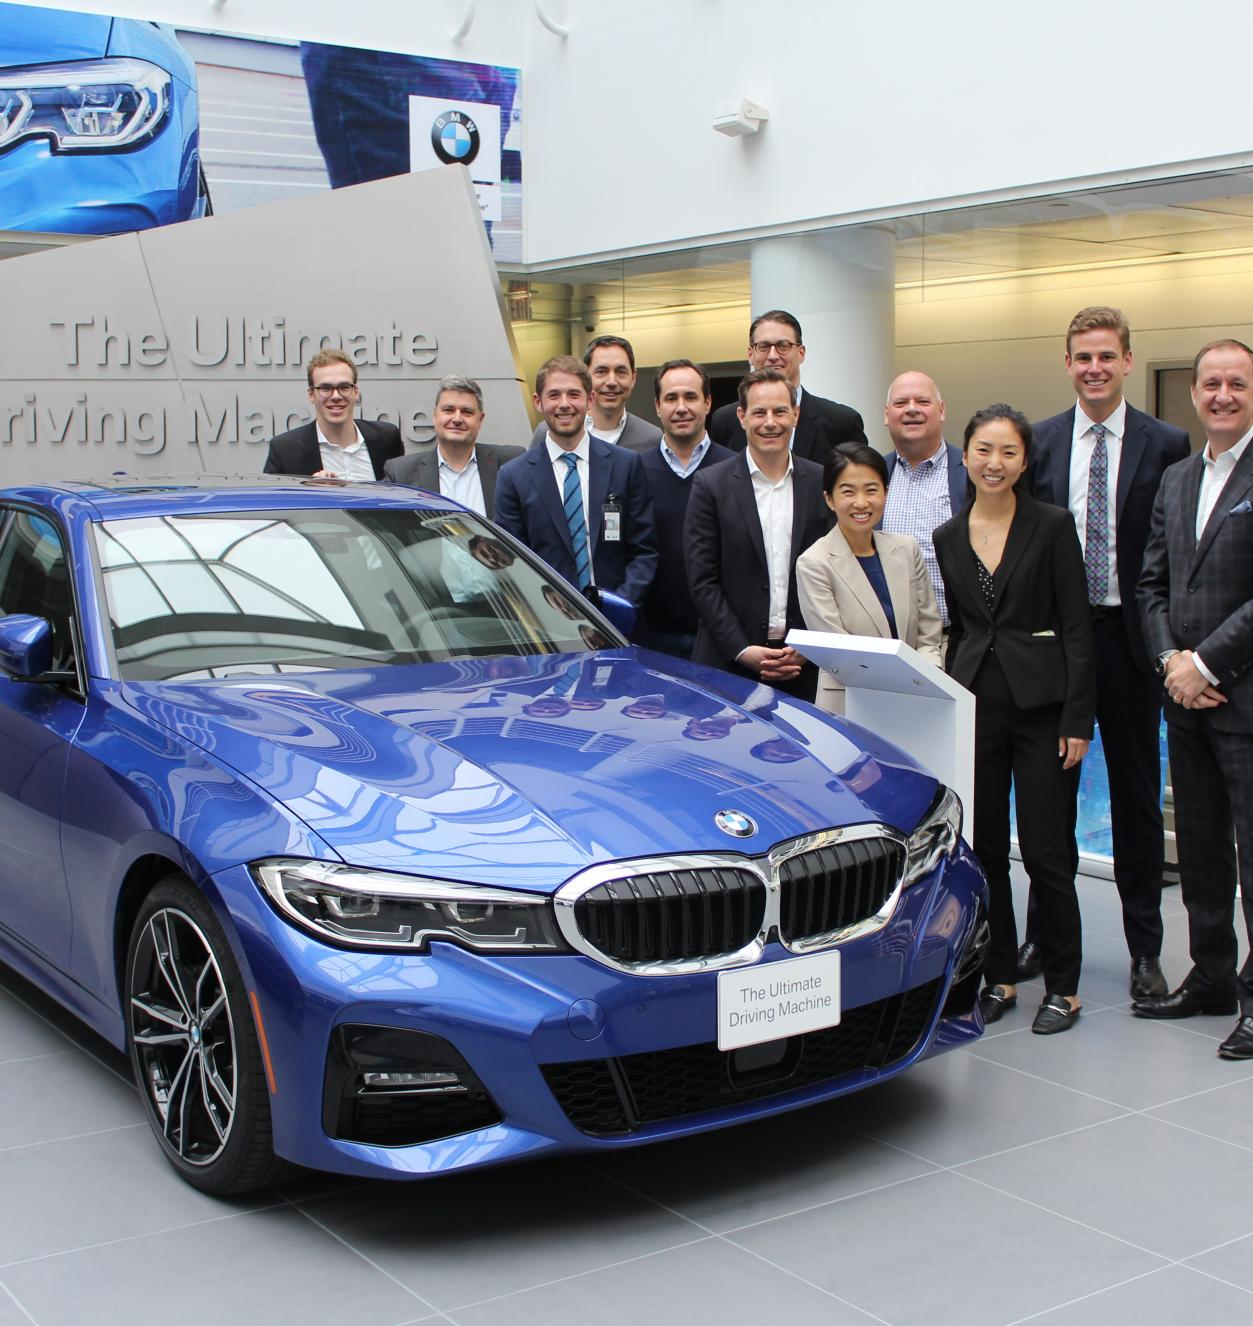 A smiling group of people standing beside a blue car